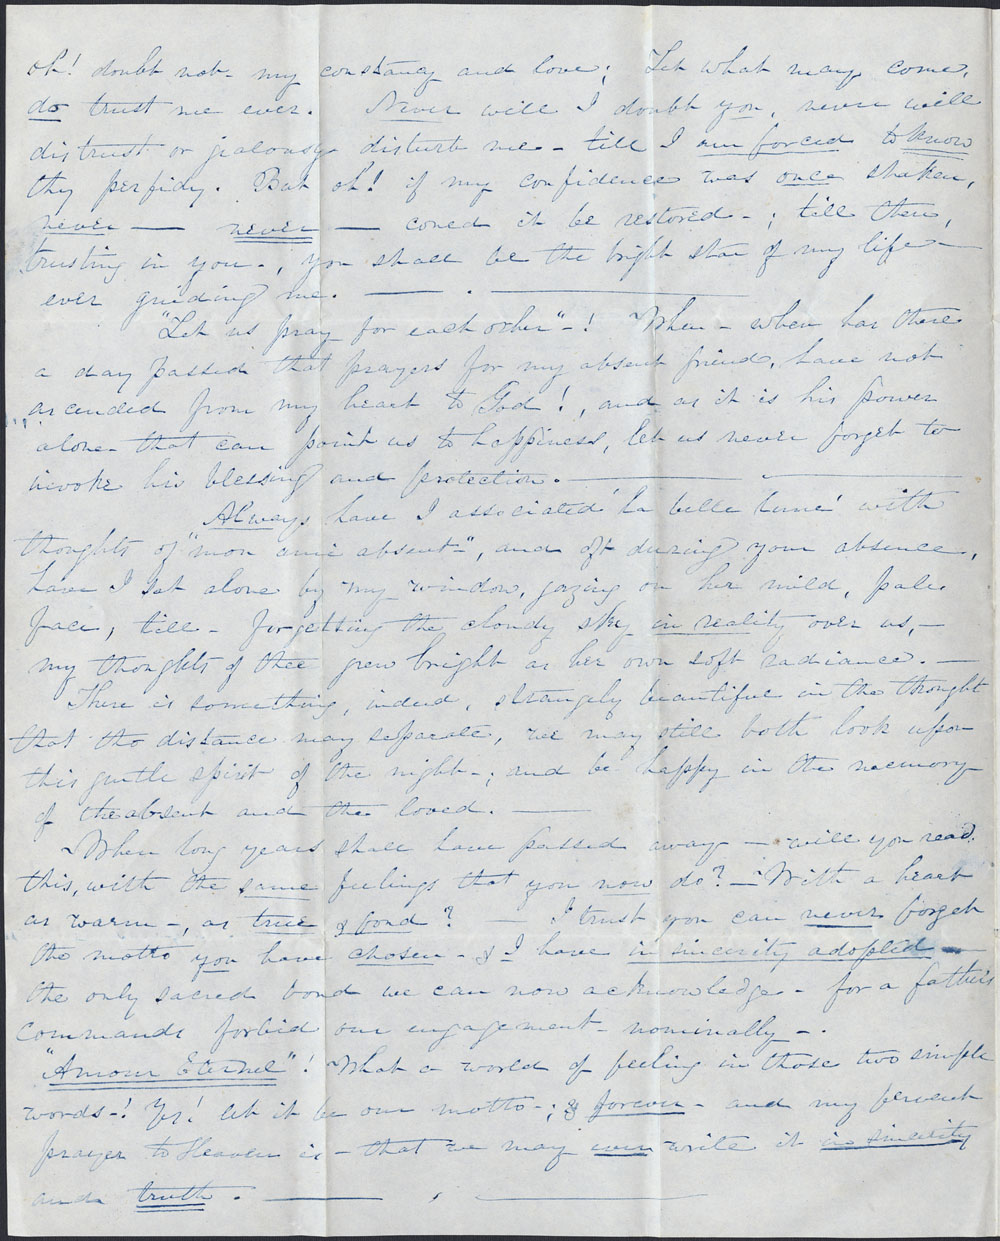 [Correspondance de Mary Westcott] 1843 . (item 8)